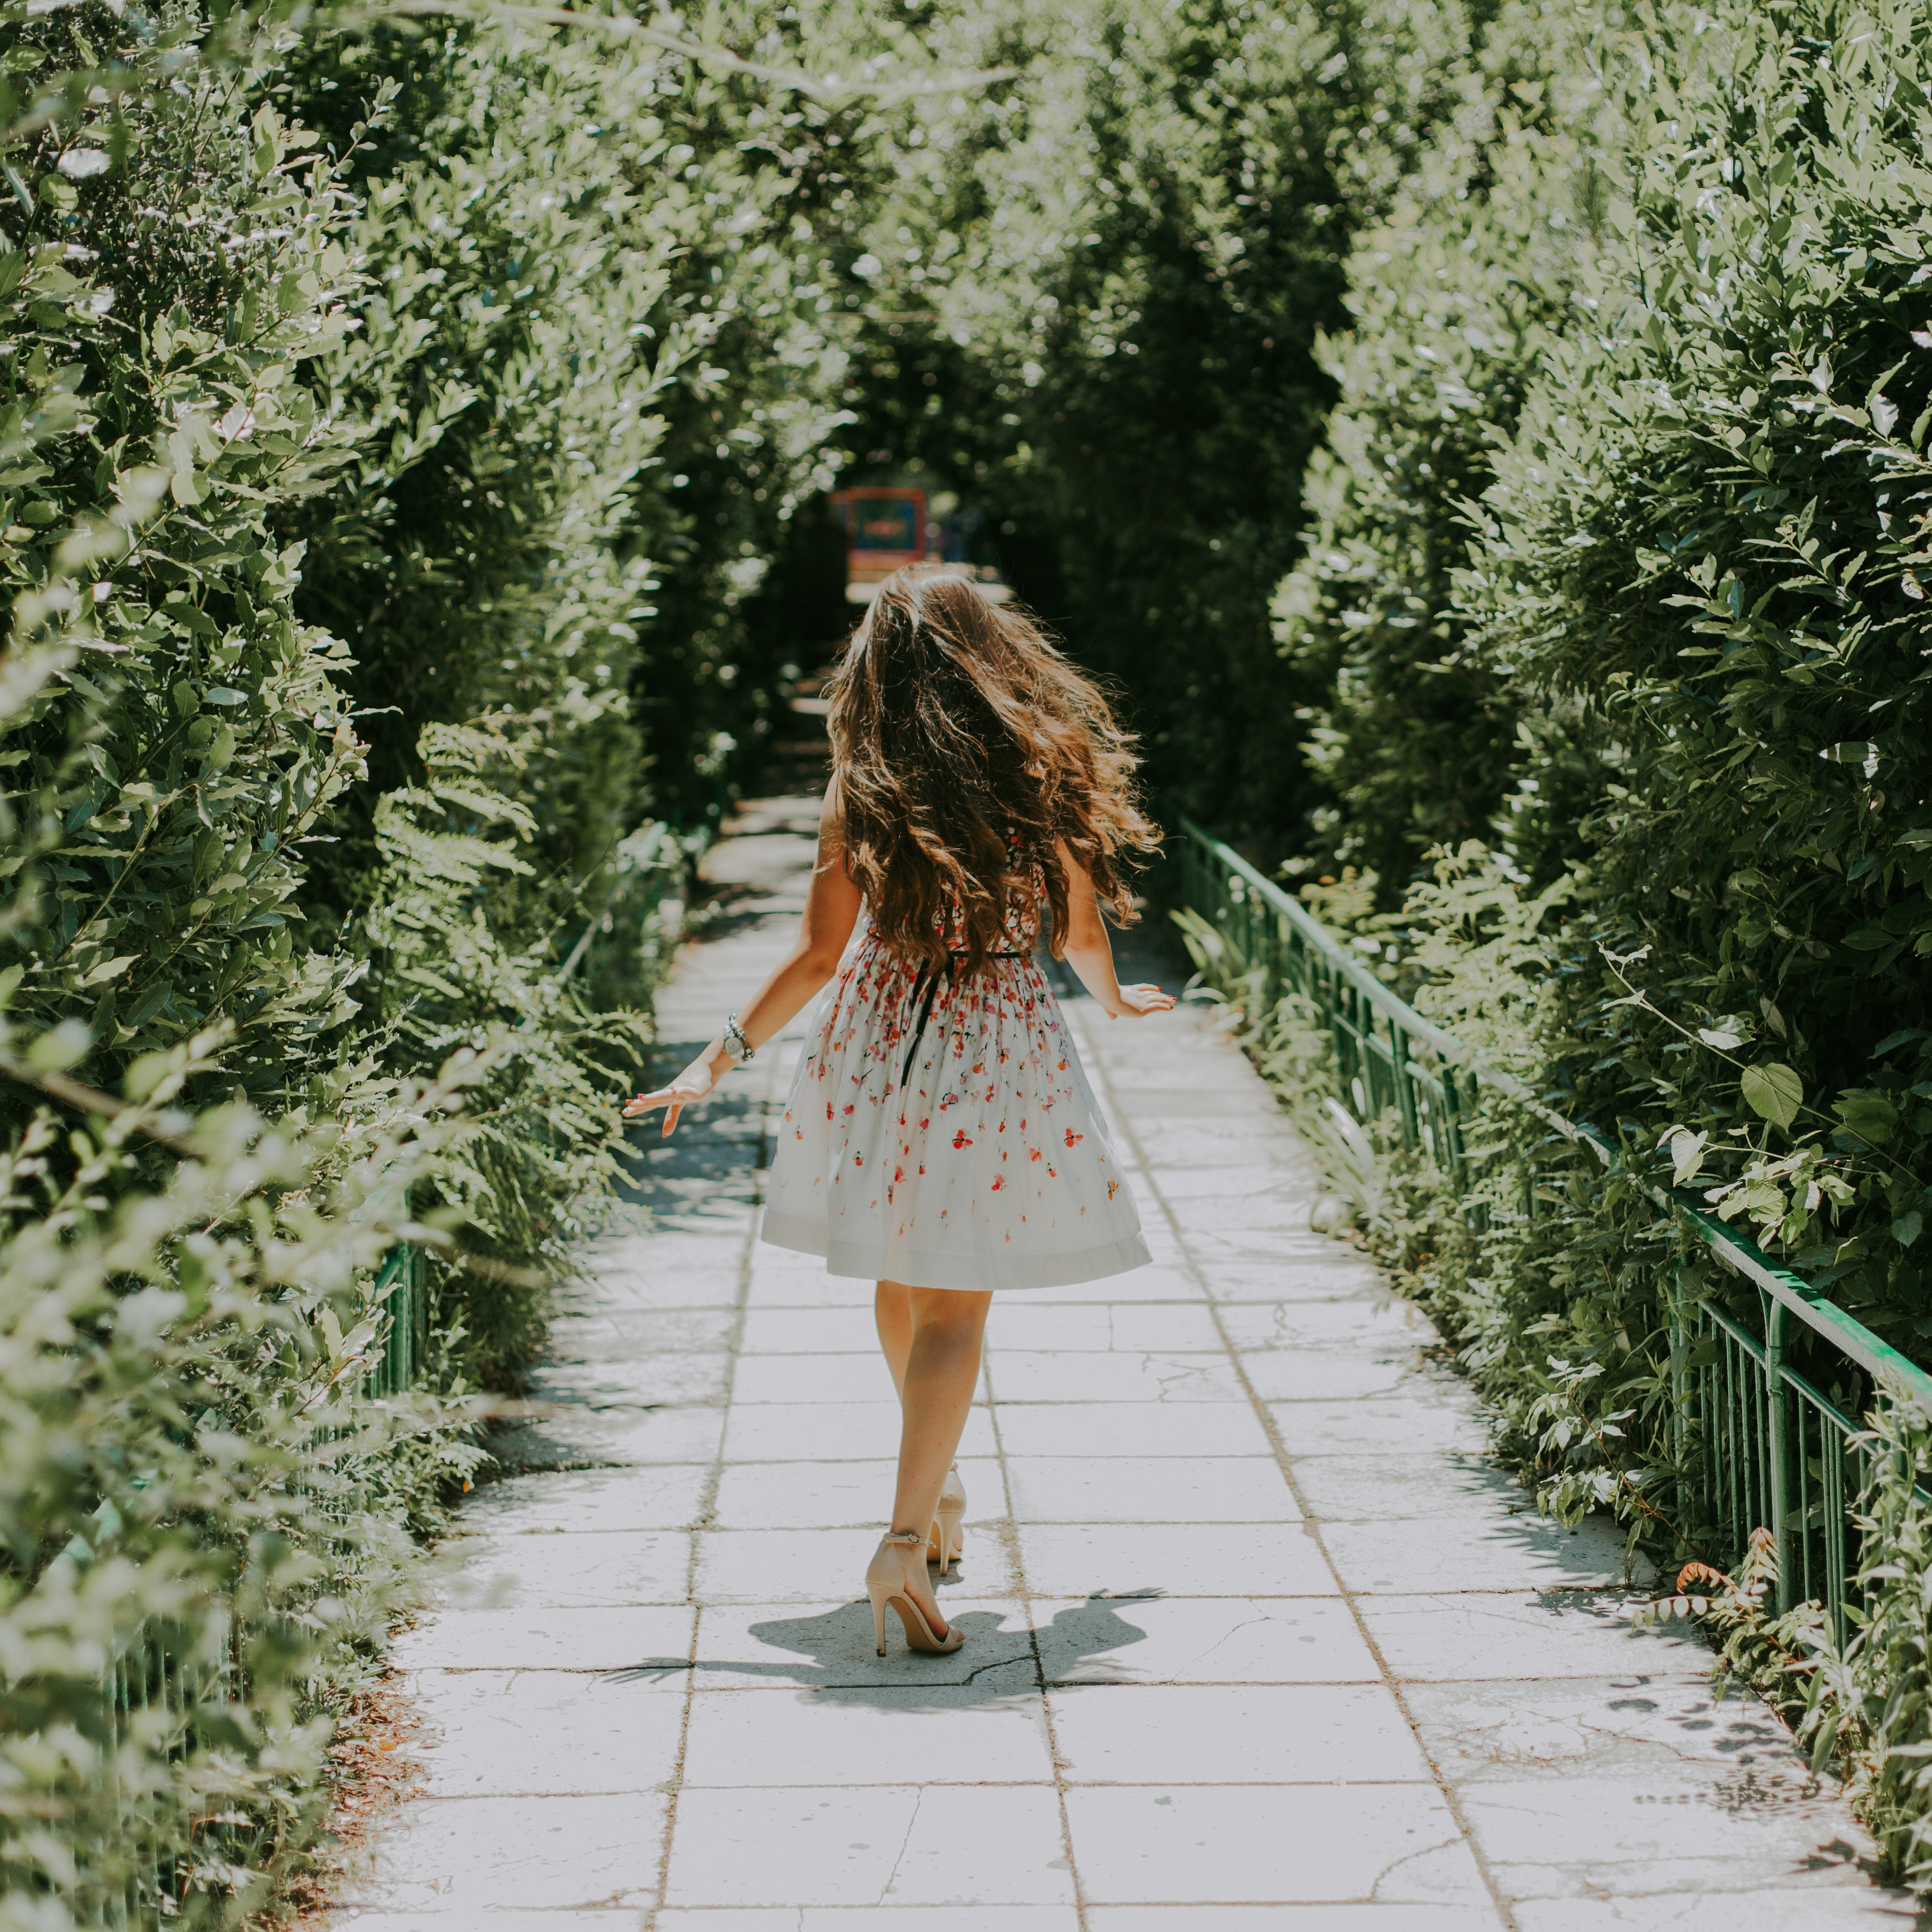 Photography of Woman in White and Red Floral Midi Dress Walking on Pathway, Adult, Outside, Woman, Wear, HQ Photo